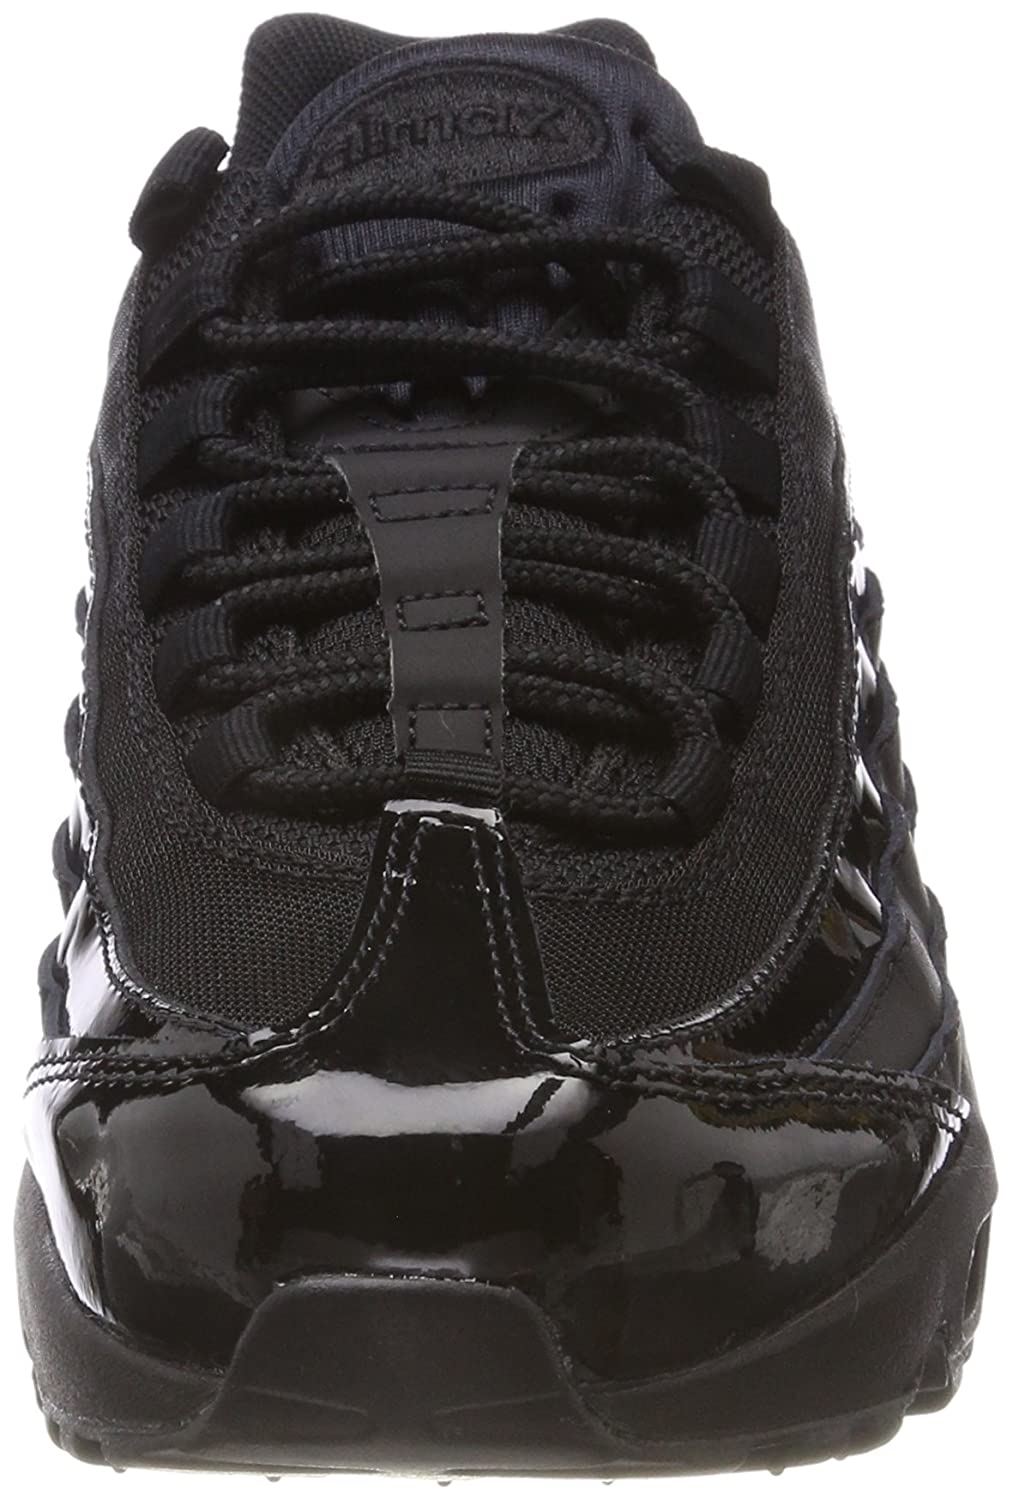 Nike Womens Air Max 95 Leather Trainers